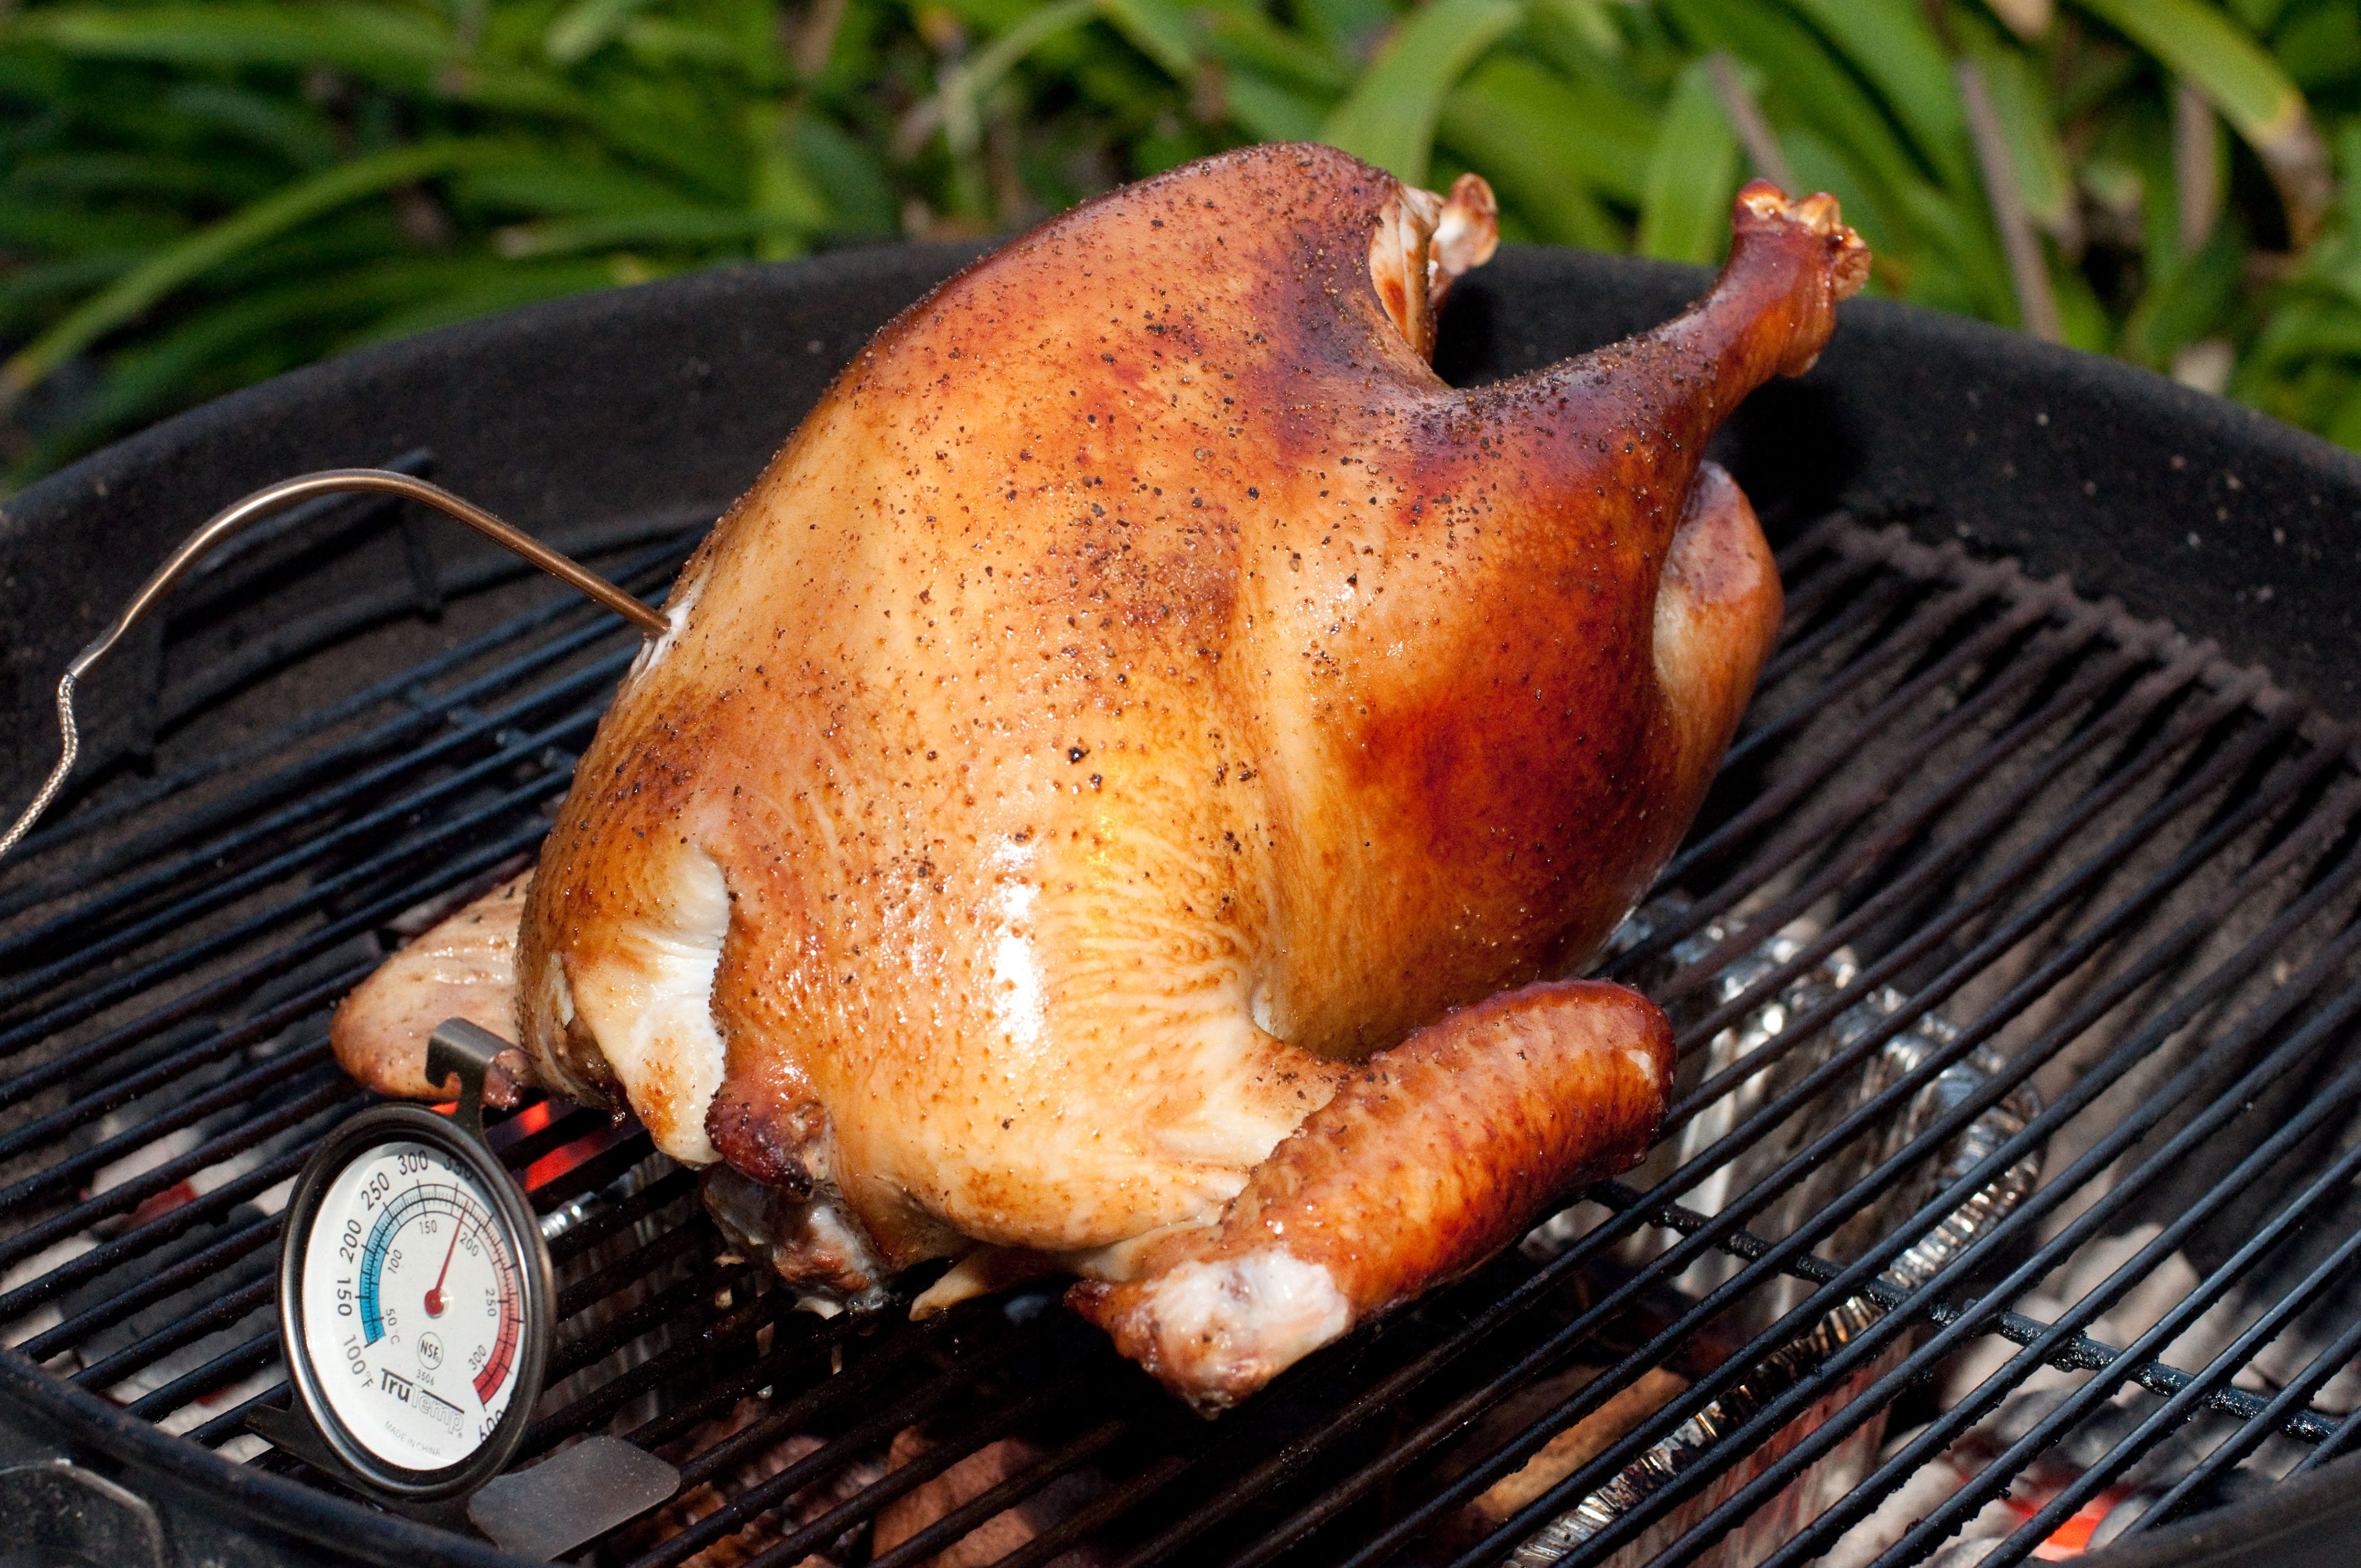 How To Grill A Turkey Rotisserie Or Not